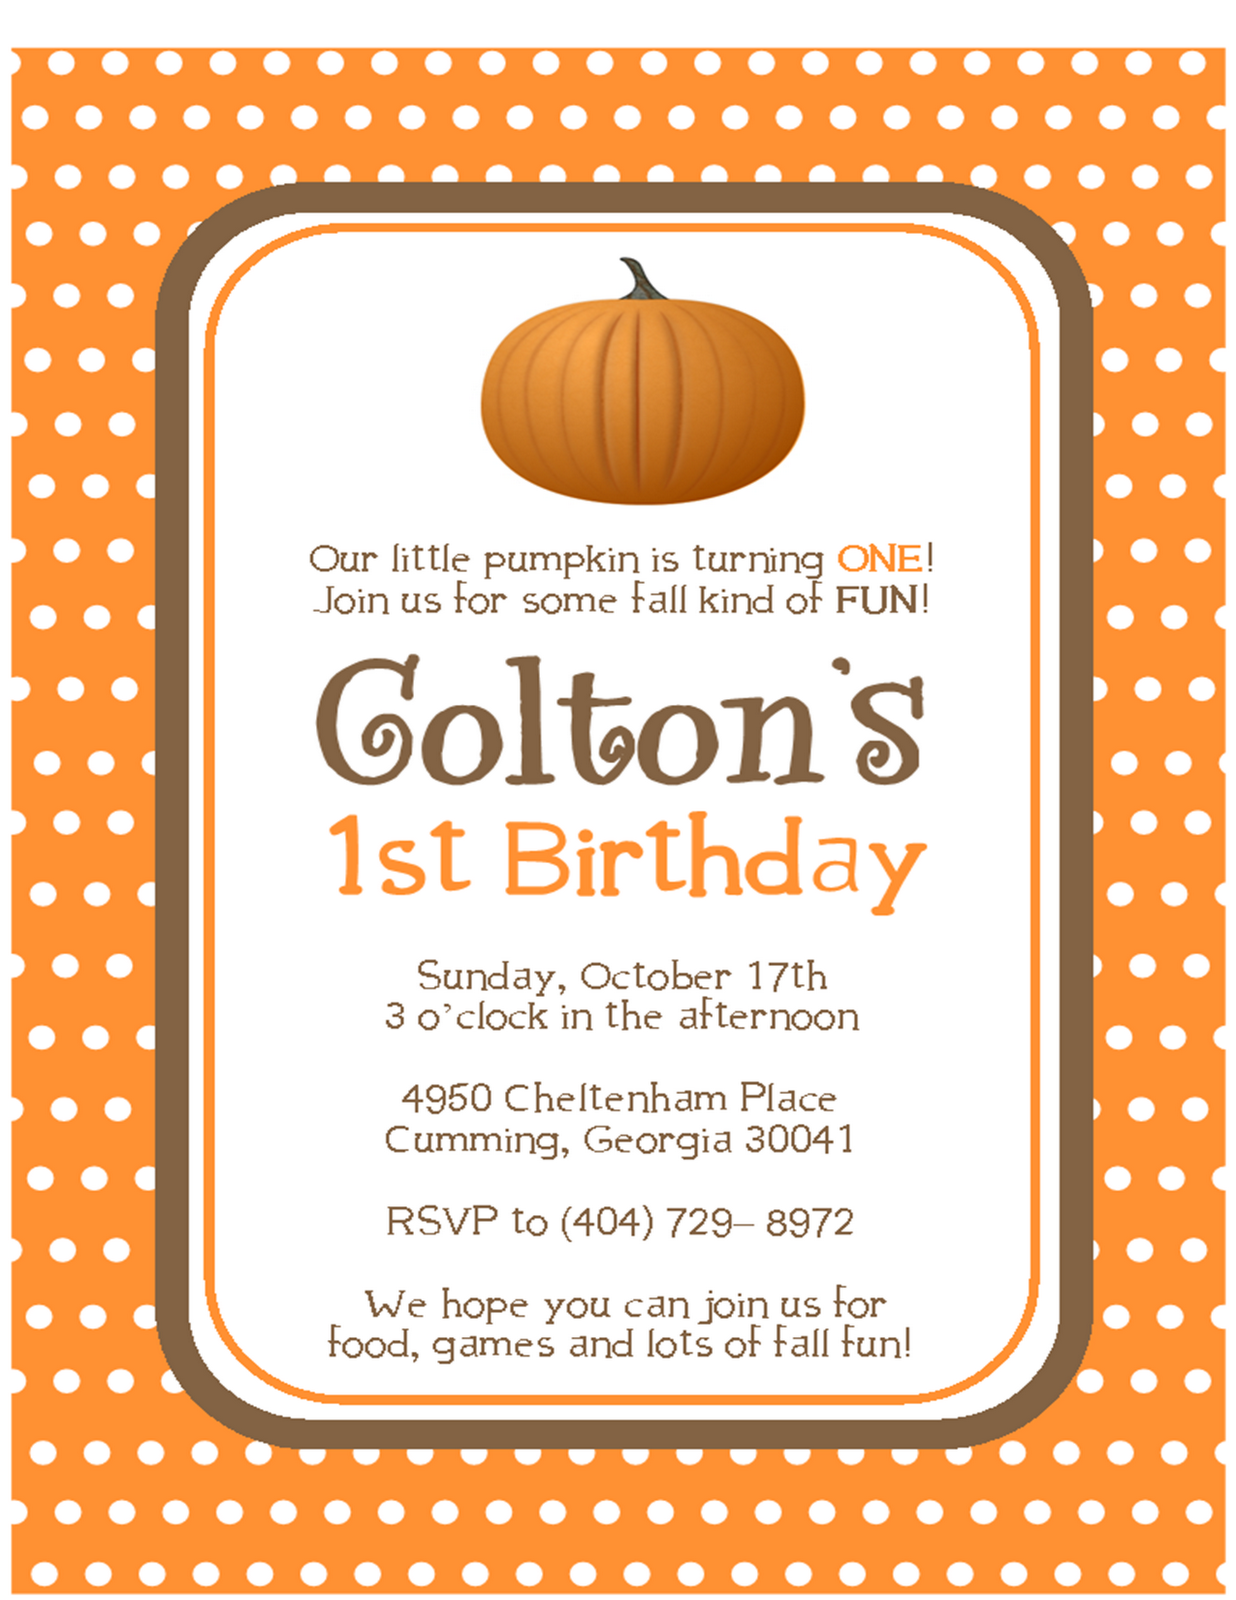 Cute idea for October birthday invitations | Party Ideas | Pinterest ...